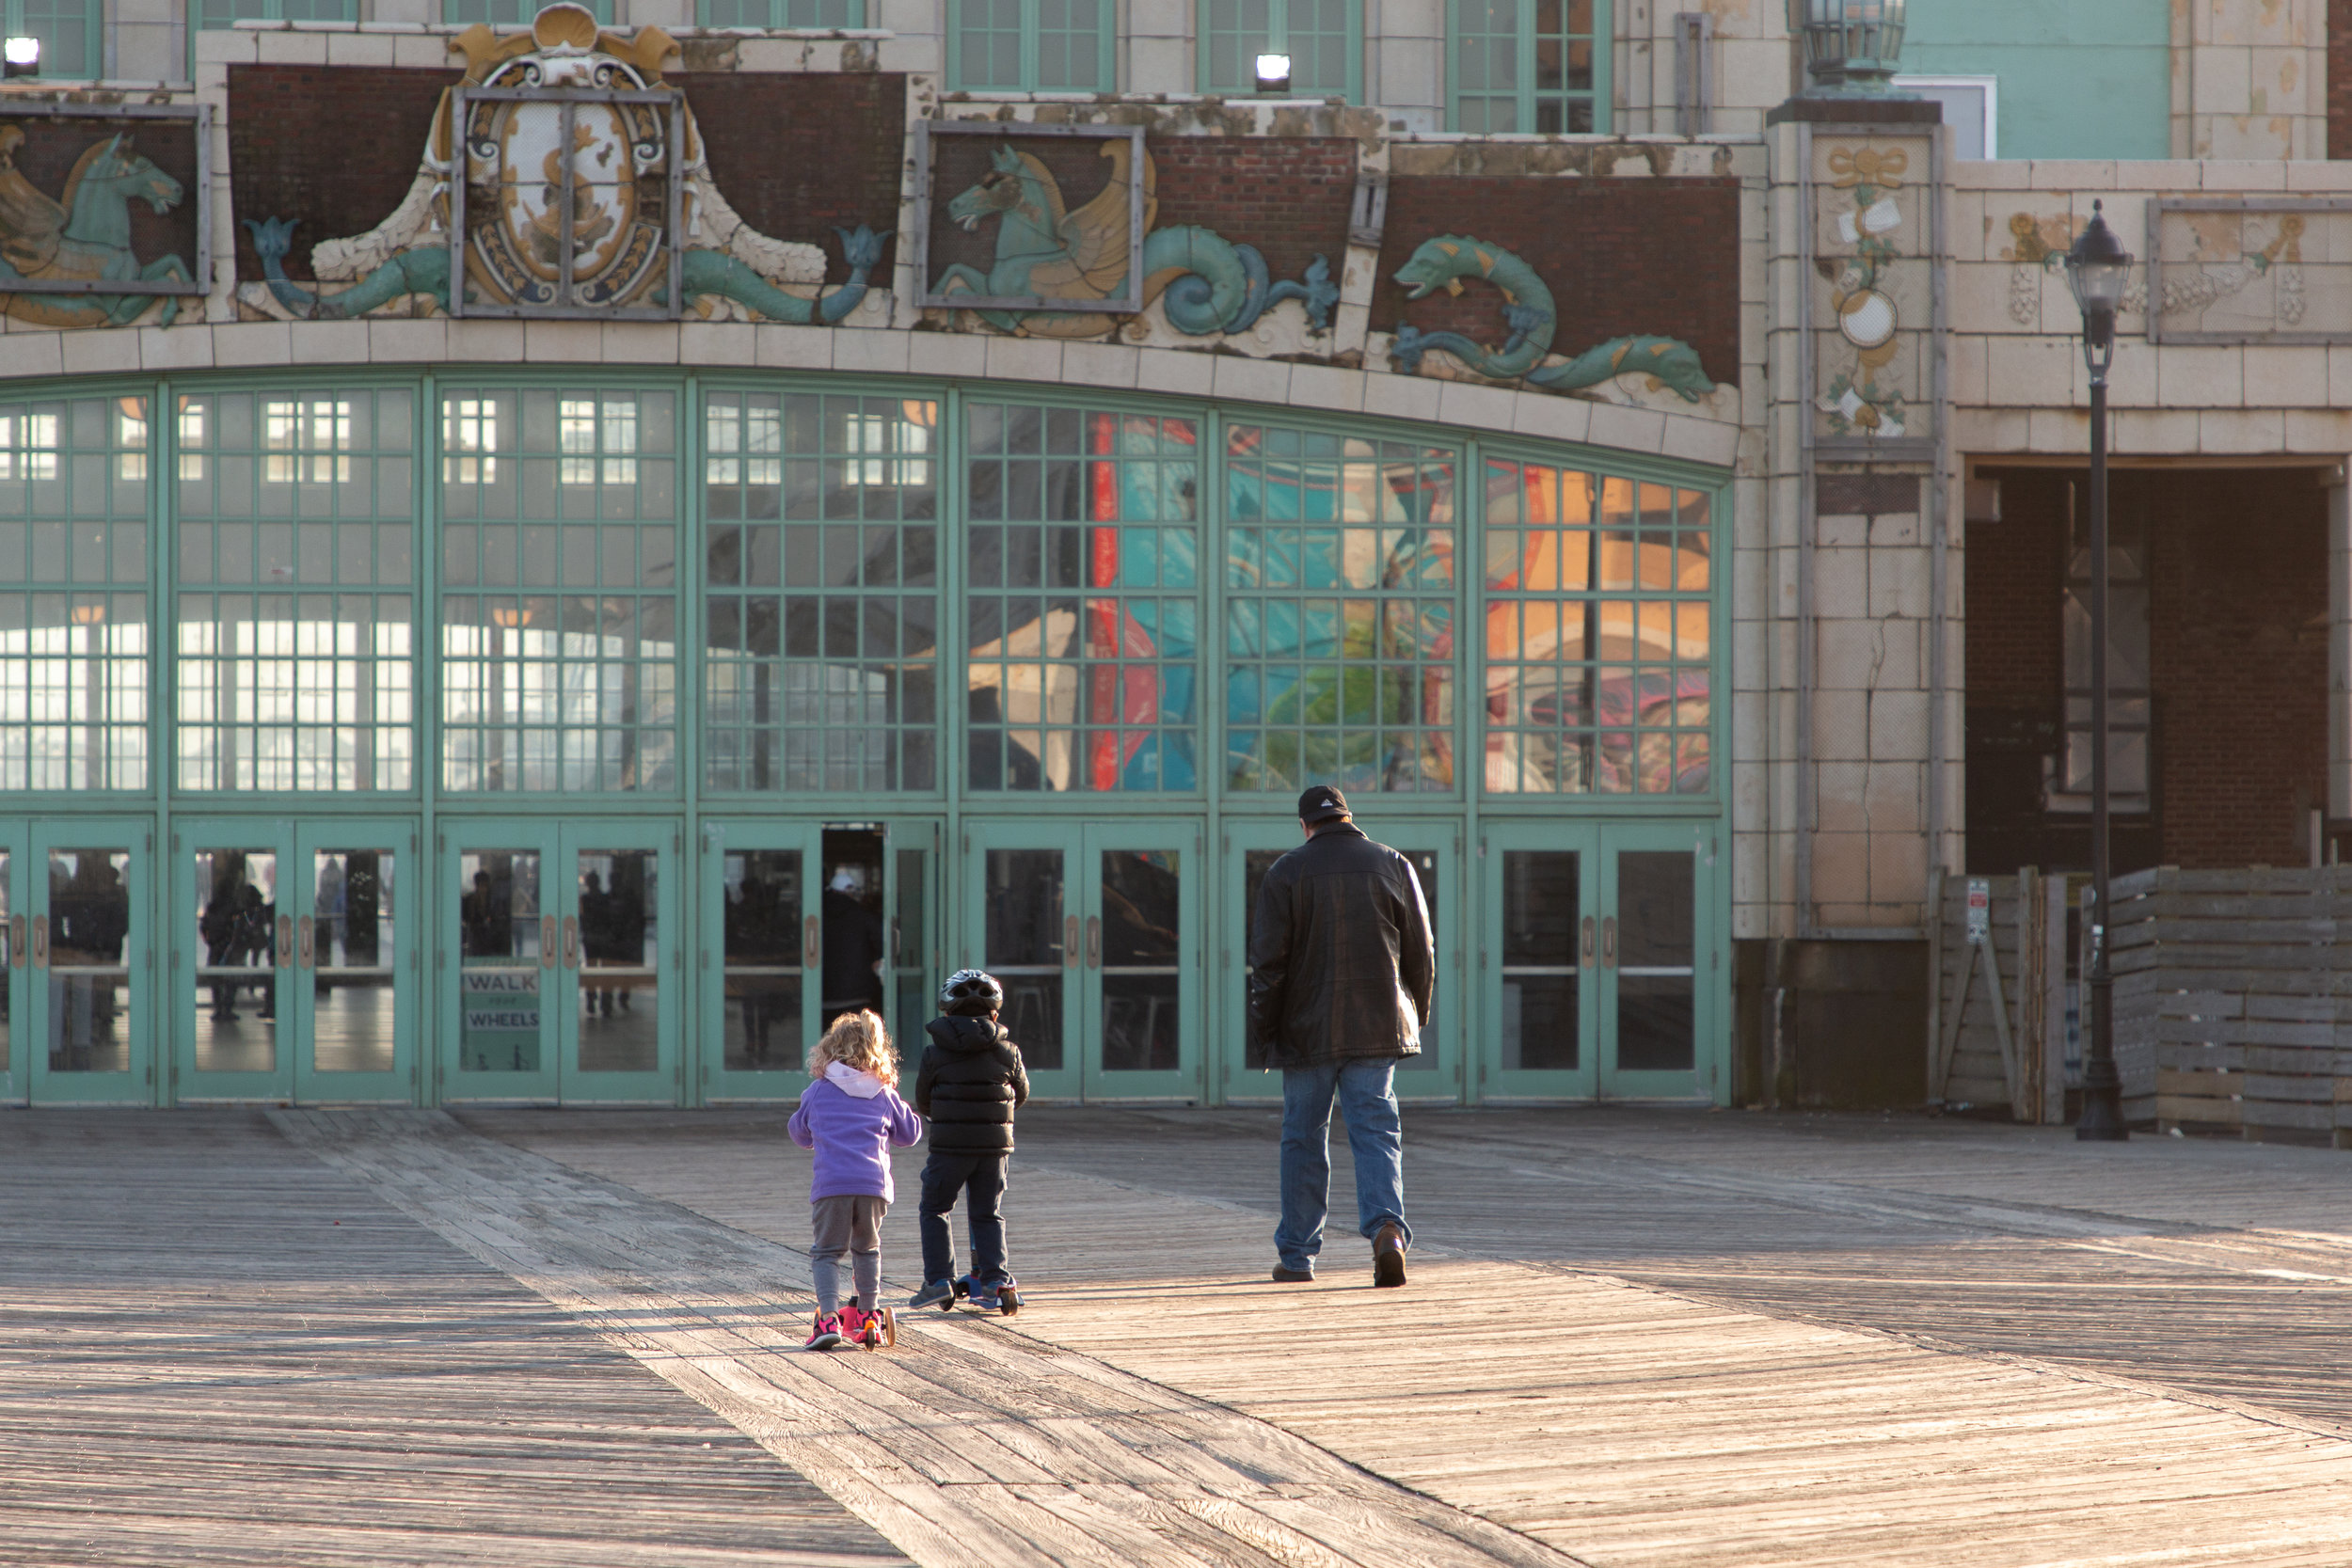 Man and two kids on boardwalk in Asbury Park, New Jersey. Photo by Kayleigh Ann Archbold.